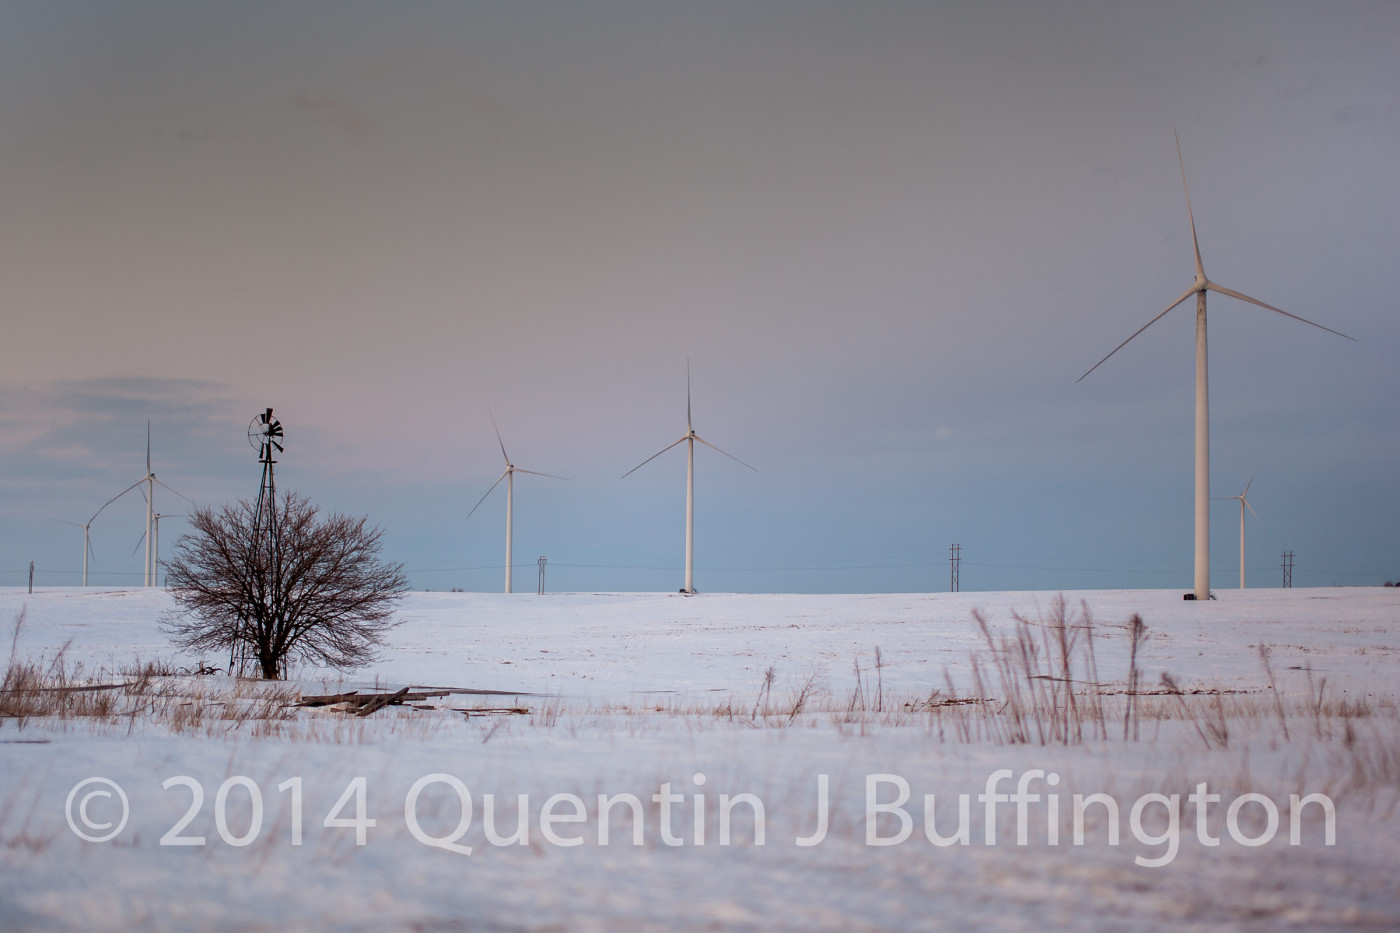 A blend of old and new windmills on the rolling hills of the Illinois Prairie.